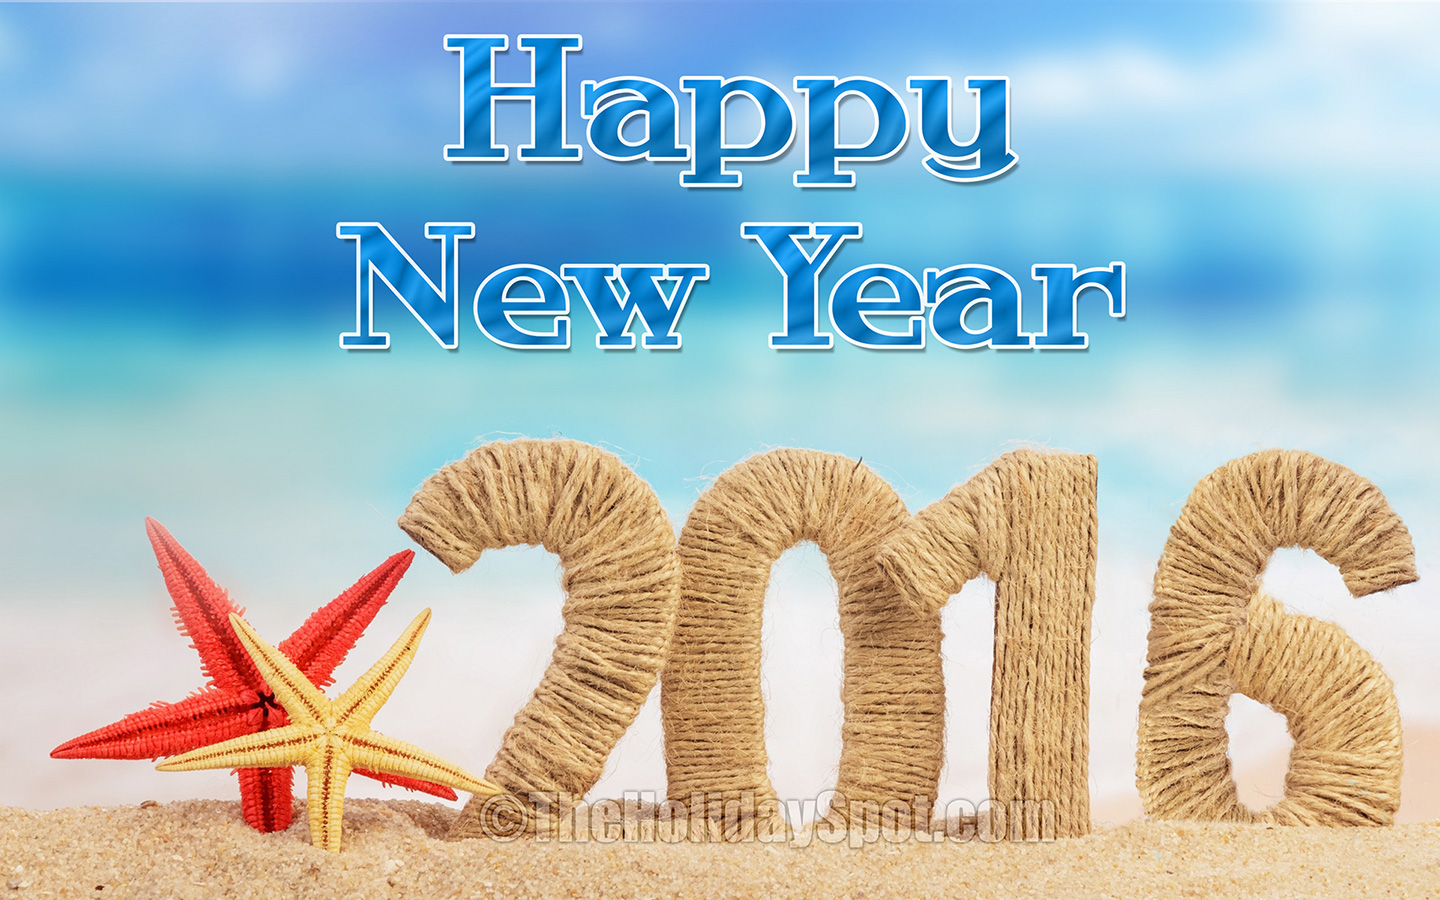 happy new year 2016 wallpaper free download for mobiles